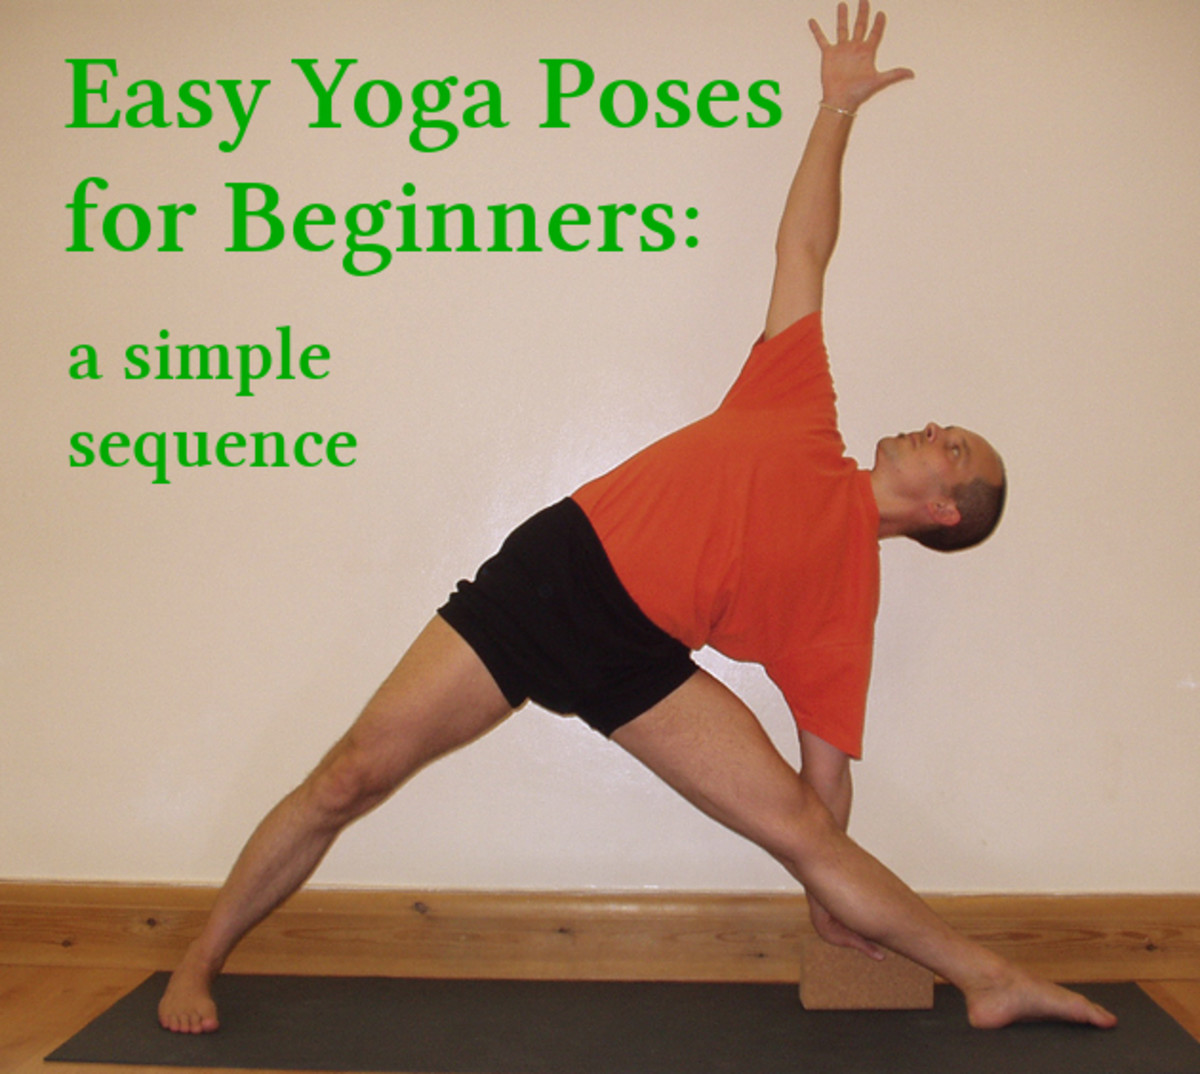 Easy Yoga Poses For Beginners And Home Practice Caloriebee